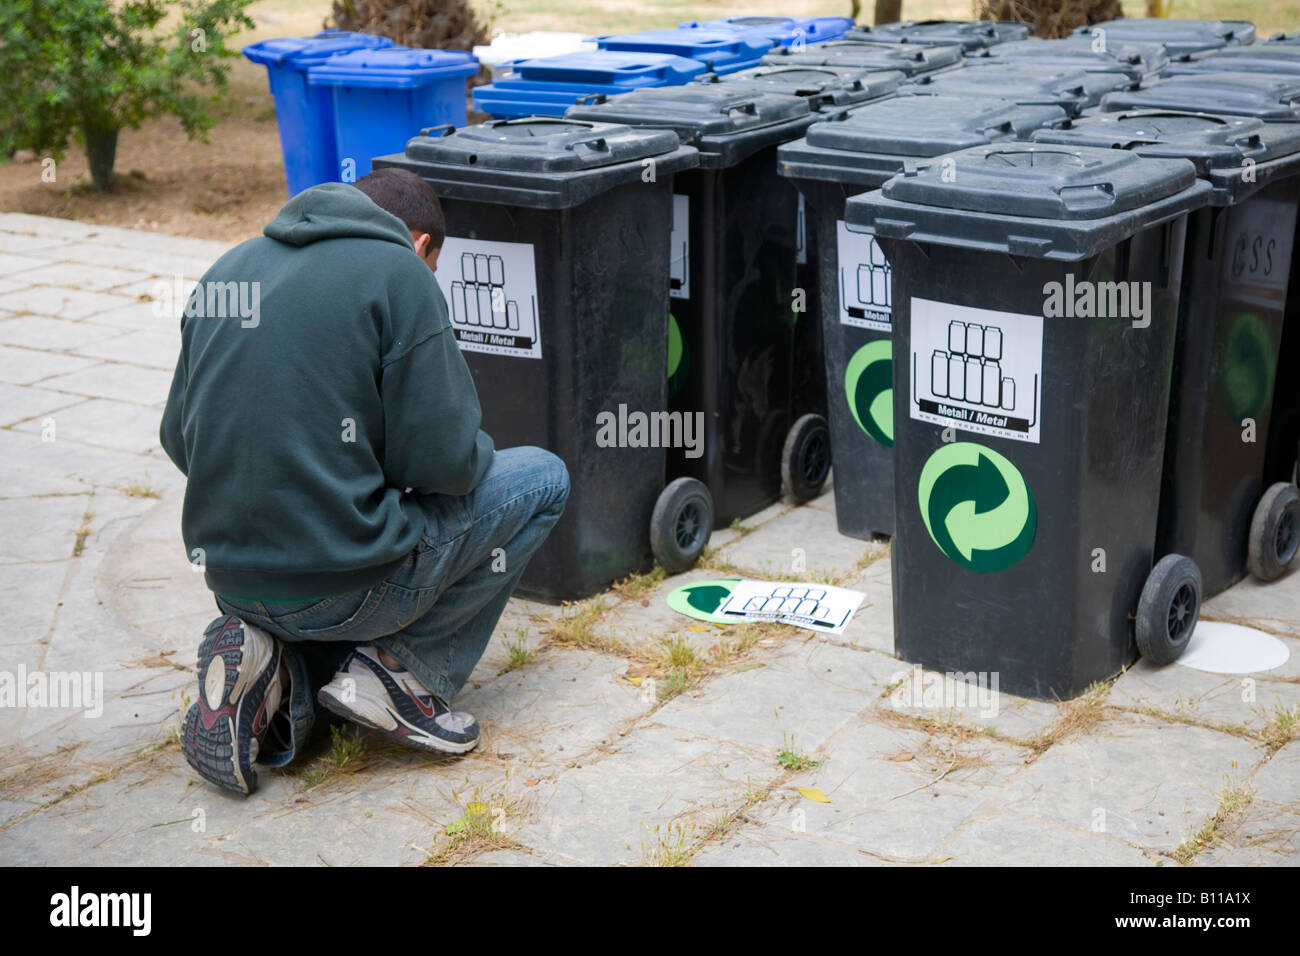 Several, many, stack of plastic metal recycling wheelie bins in Malta. Stock Photo